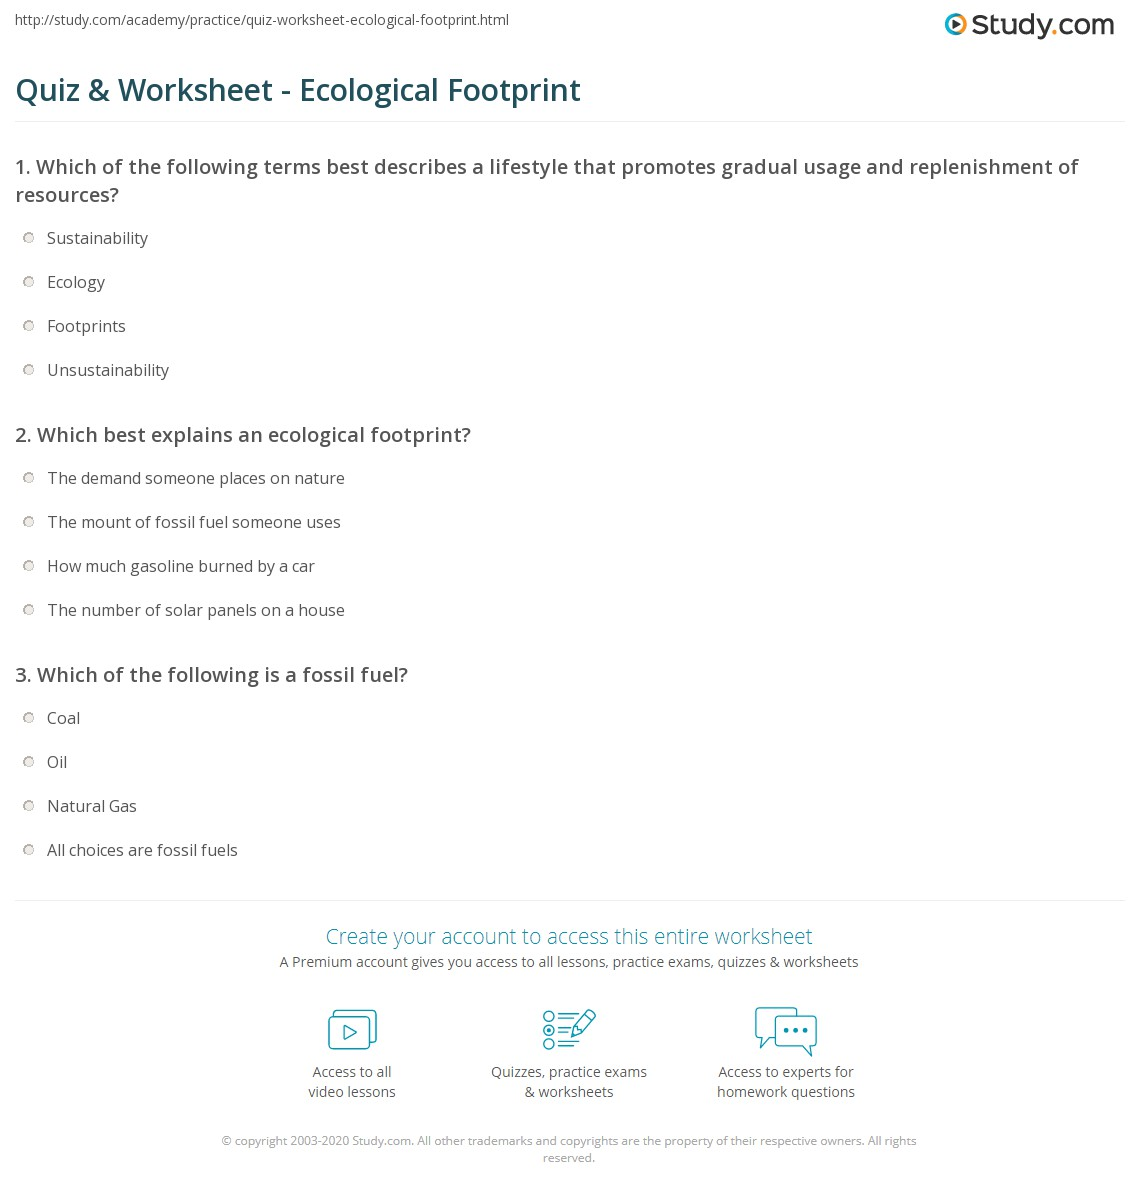 Quiz & Worksheet - Ecological Footprint | Study.com